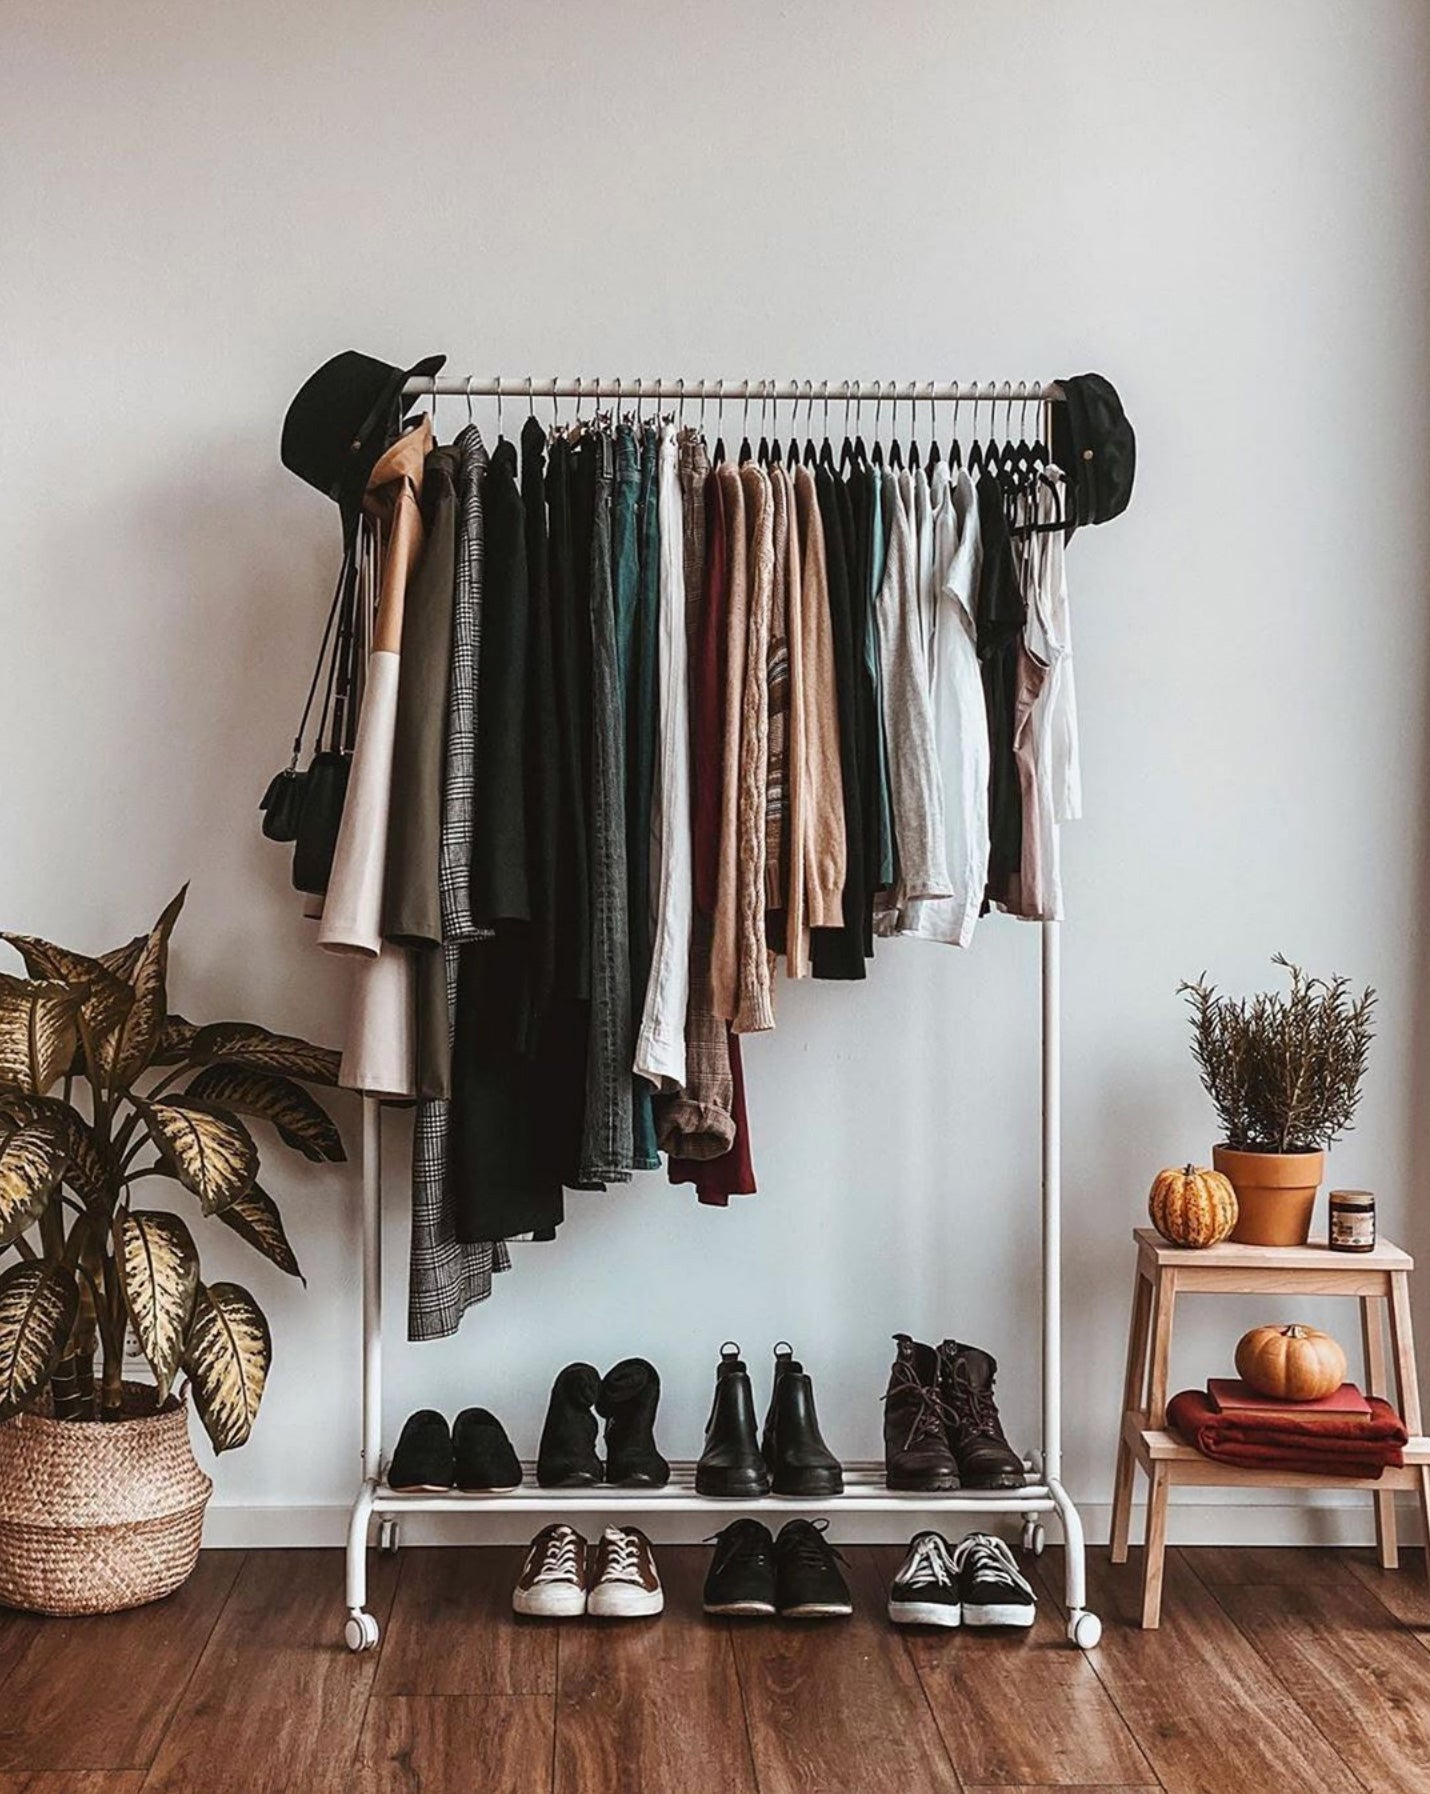 @selinasinspiration Instagram - Learn How to Build a Capsule Wardrobe & Create a Stylish Outfit in One-Minute ⏰